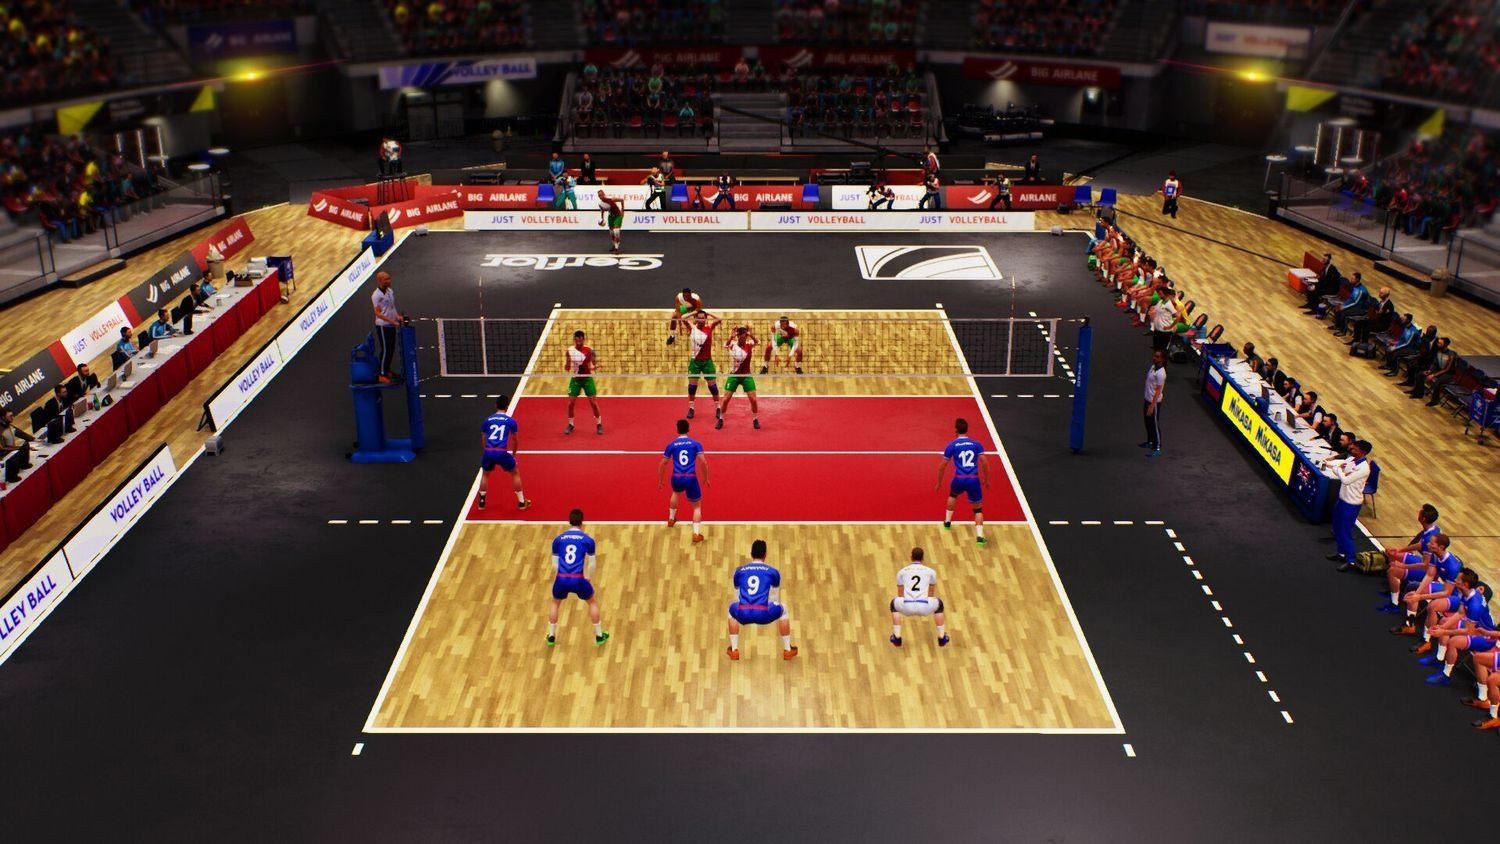 Spike Volleyball (PS4) - 7